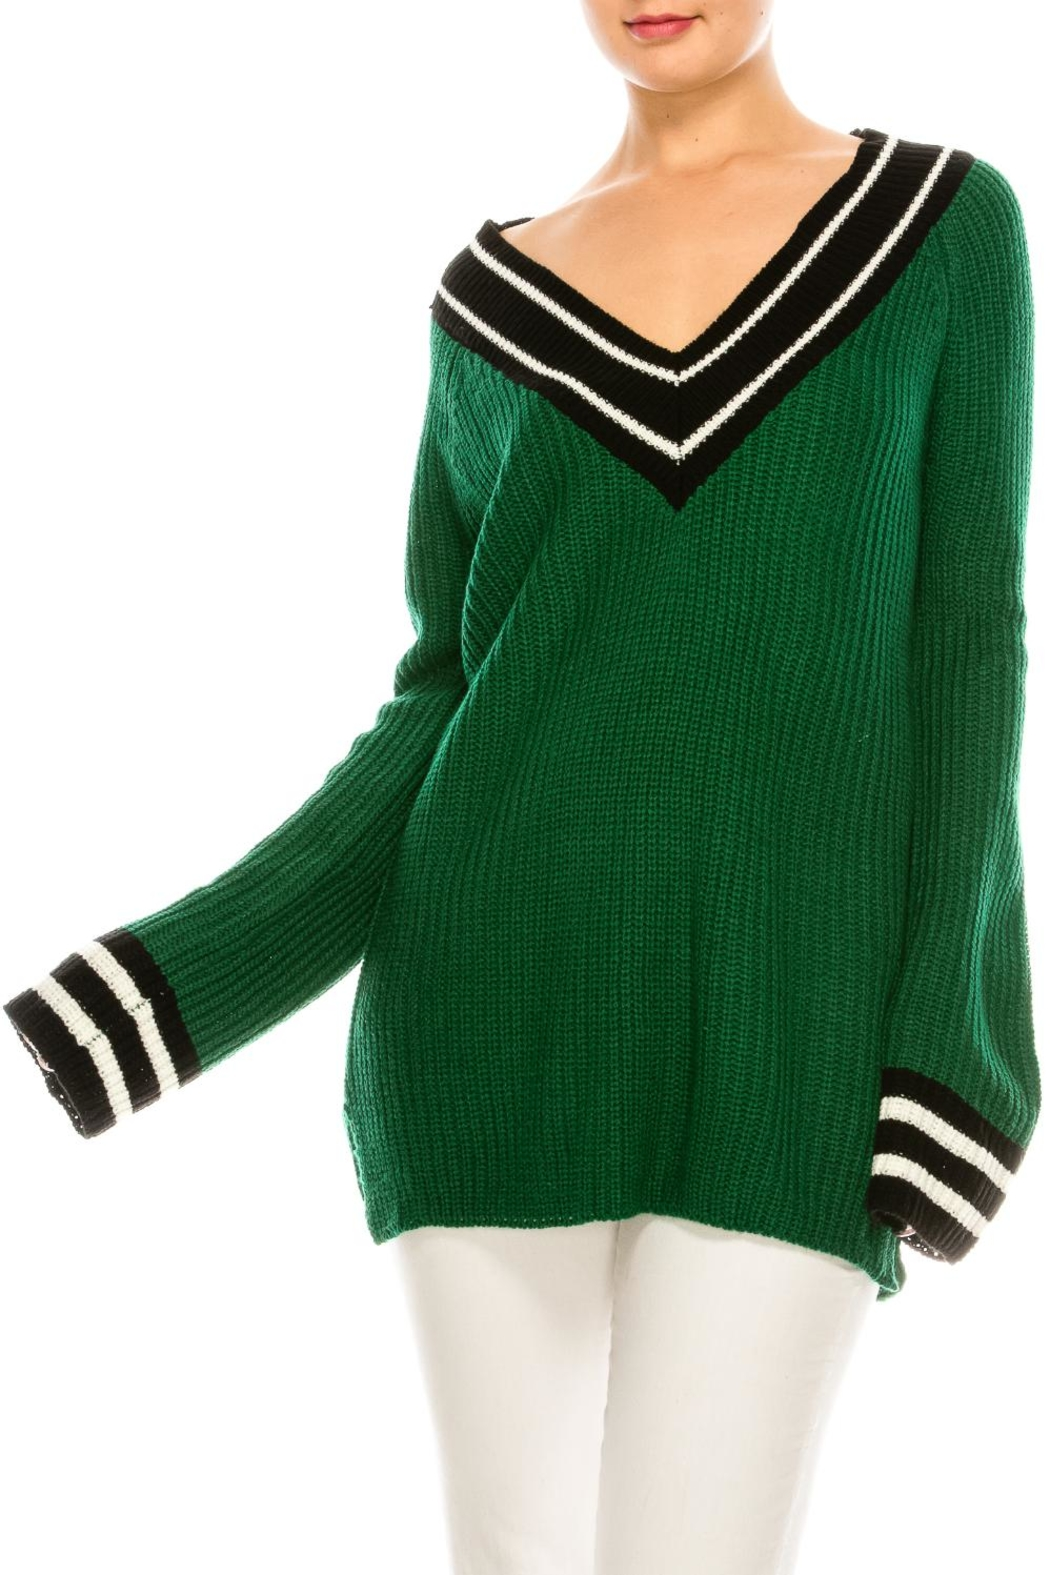 a5314f0ba9a40 Strut   Bolt Green Varsity Sweater from New York by Dor L Dor ...